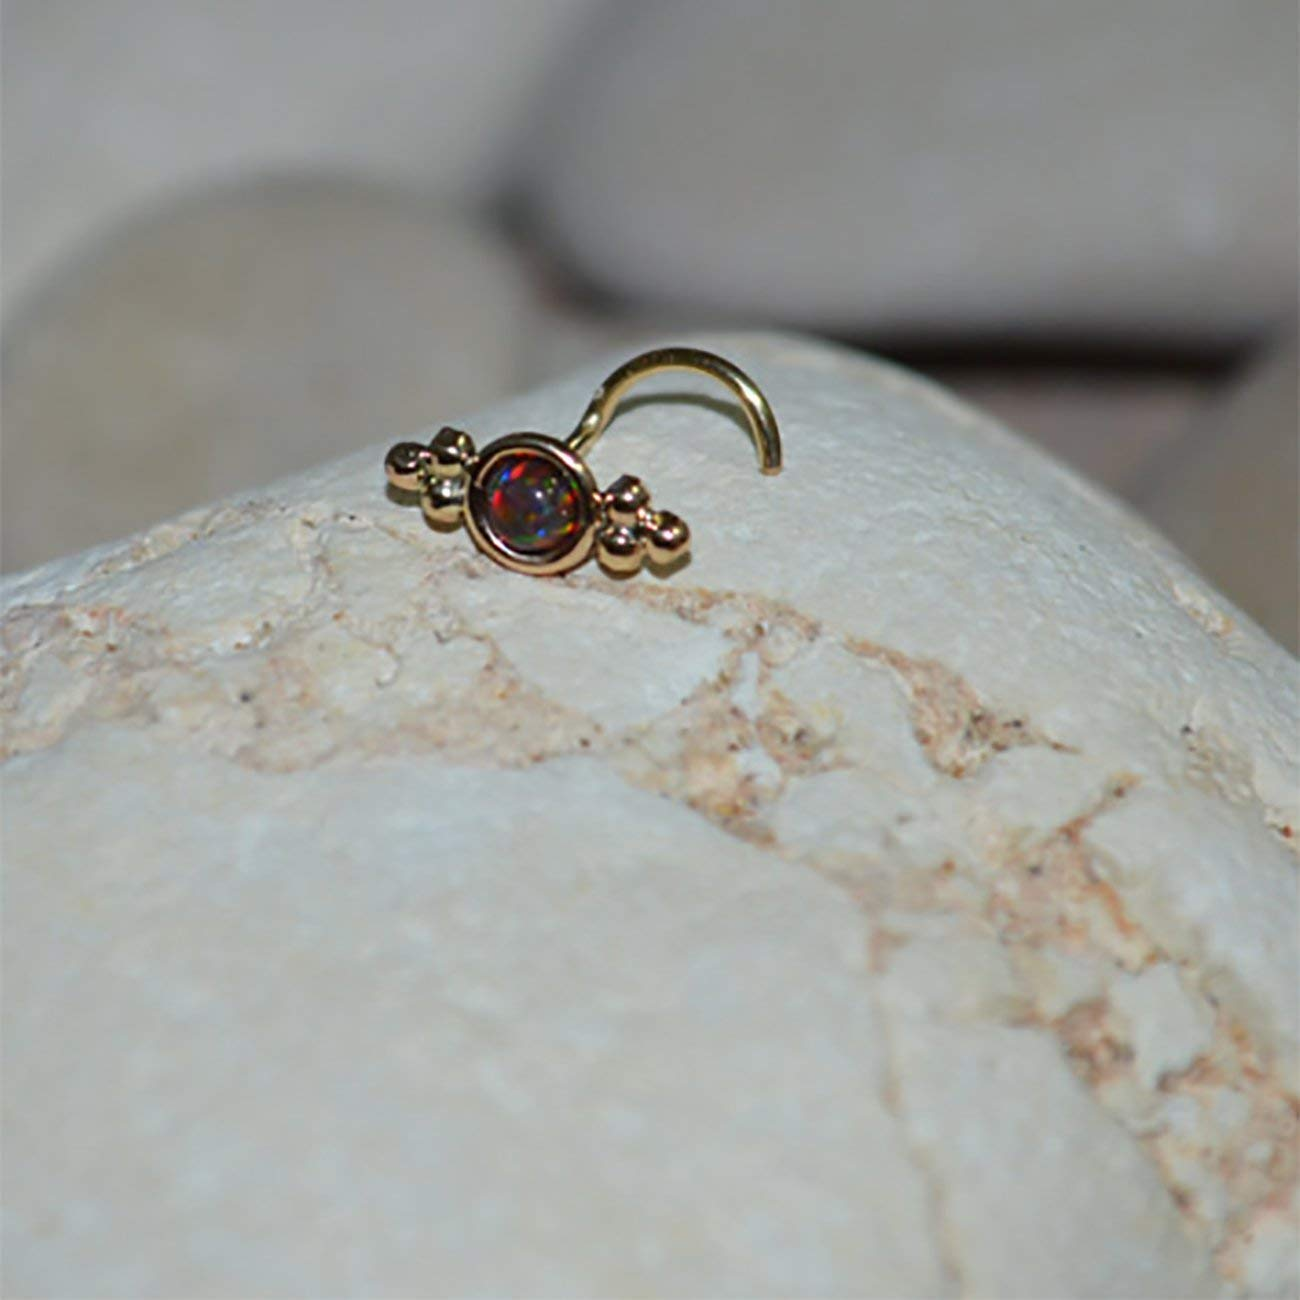 Amazon Com 3mm Black Red Opal Nose Stud Earring Gold Nose Hoop Tragus Stud Earring Gold Nose Ring 16g